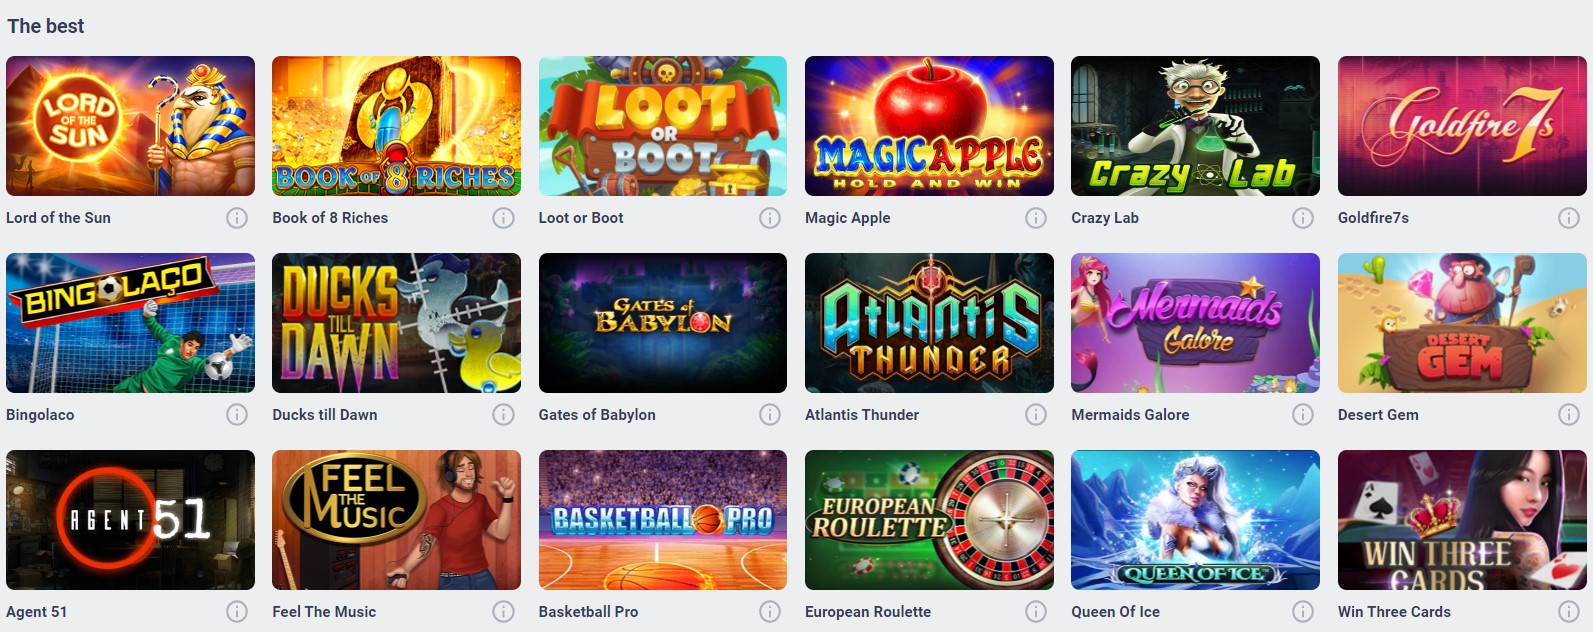 Cyber Bet Casino Games